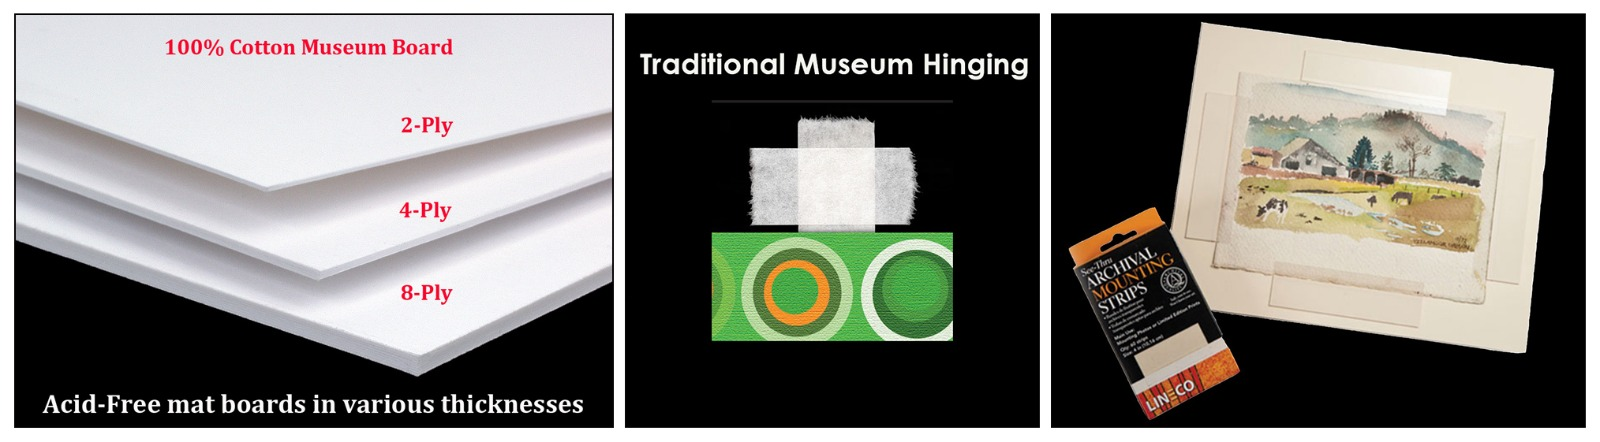 Acid-free Museum Matboard Traditional Museum Hinging Archival Mounting Strips